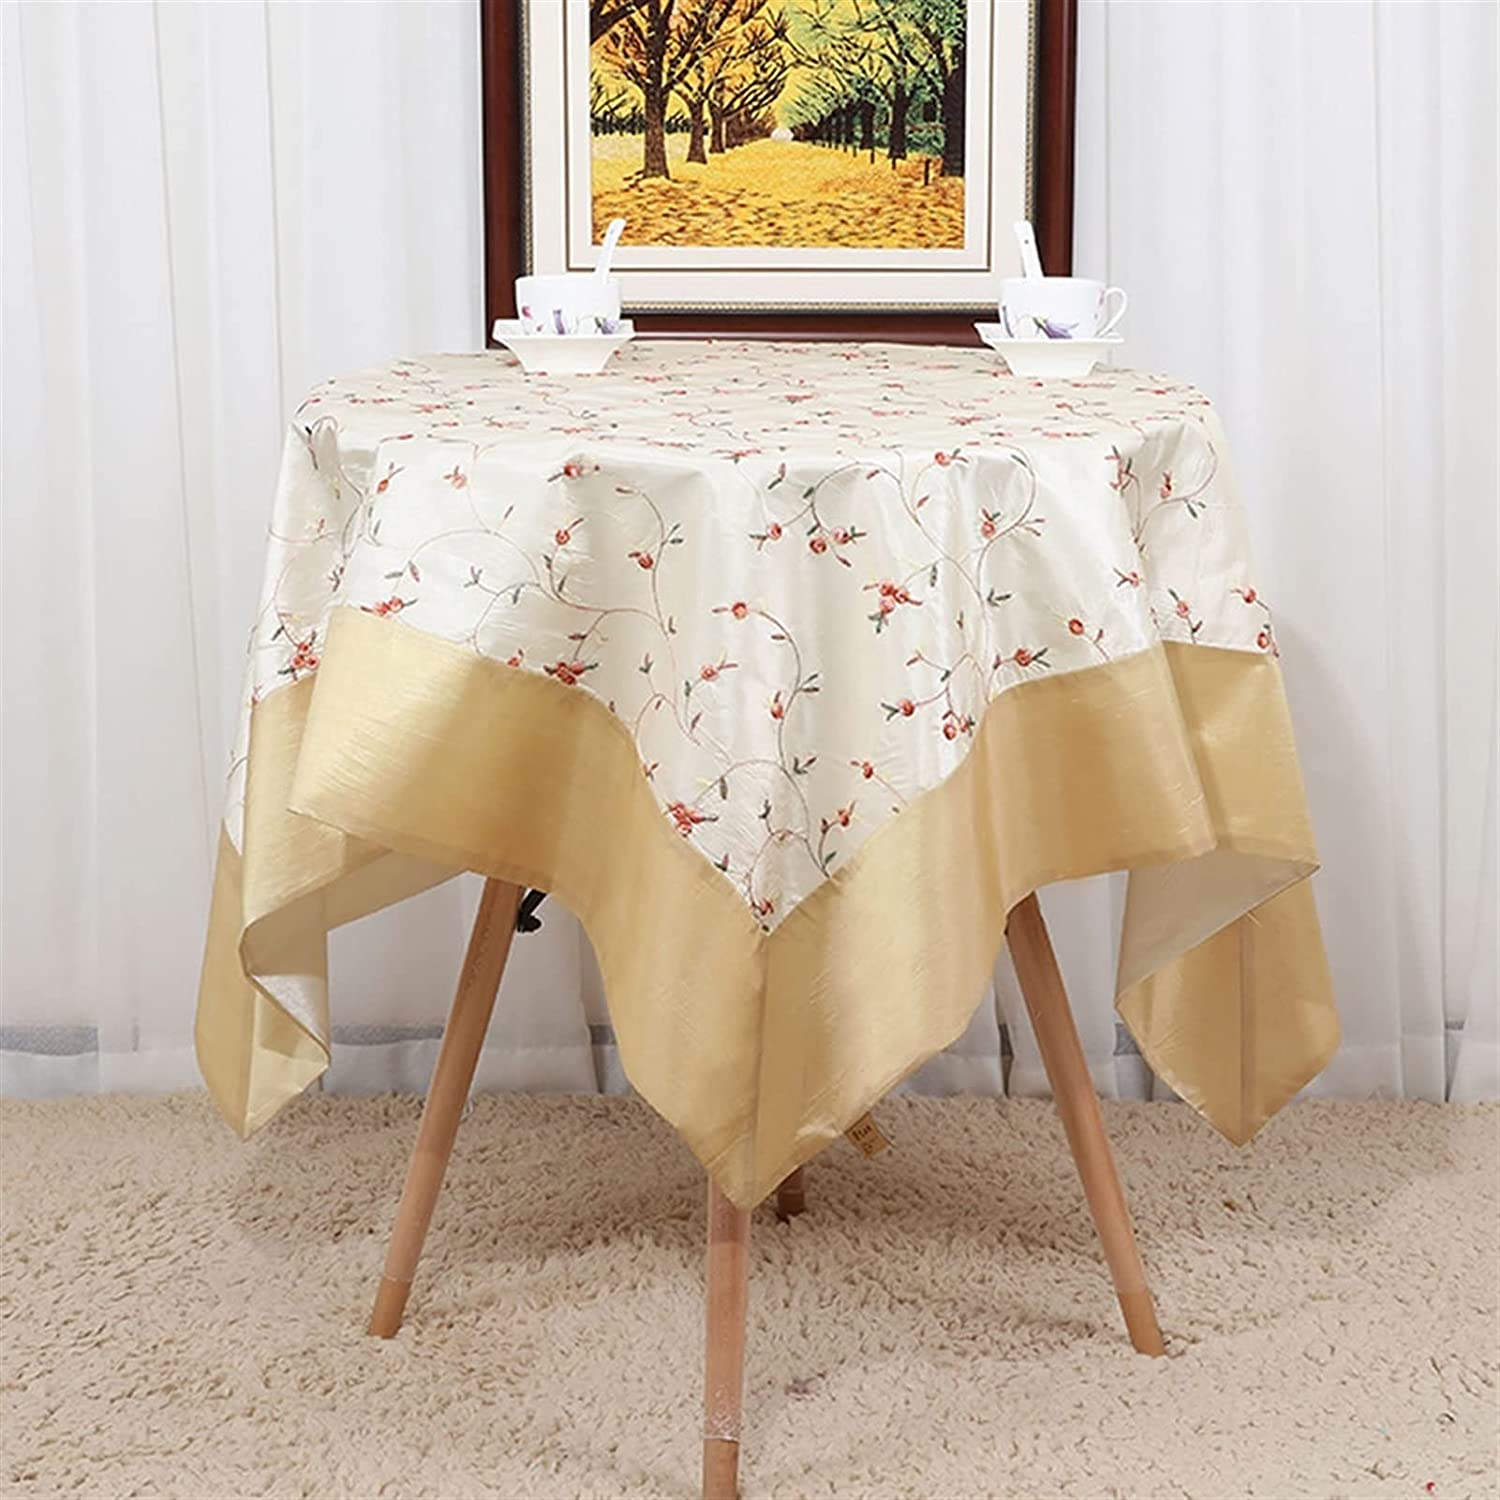 Max 72% OFF WENLI Safety and trust Tablecloths Handmade Simple Christmas Kitchen New Year Hom